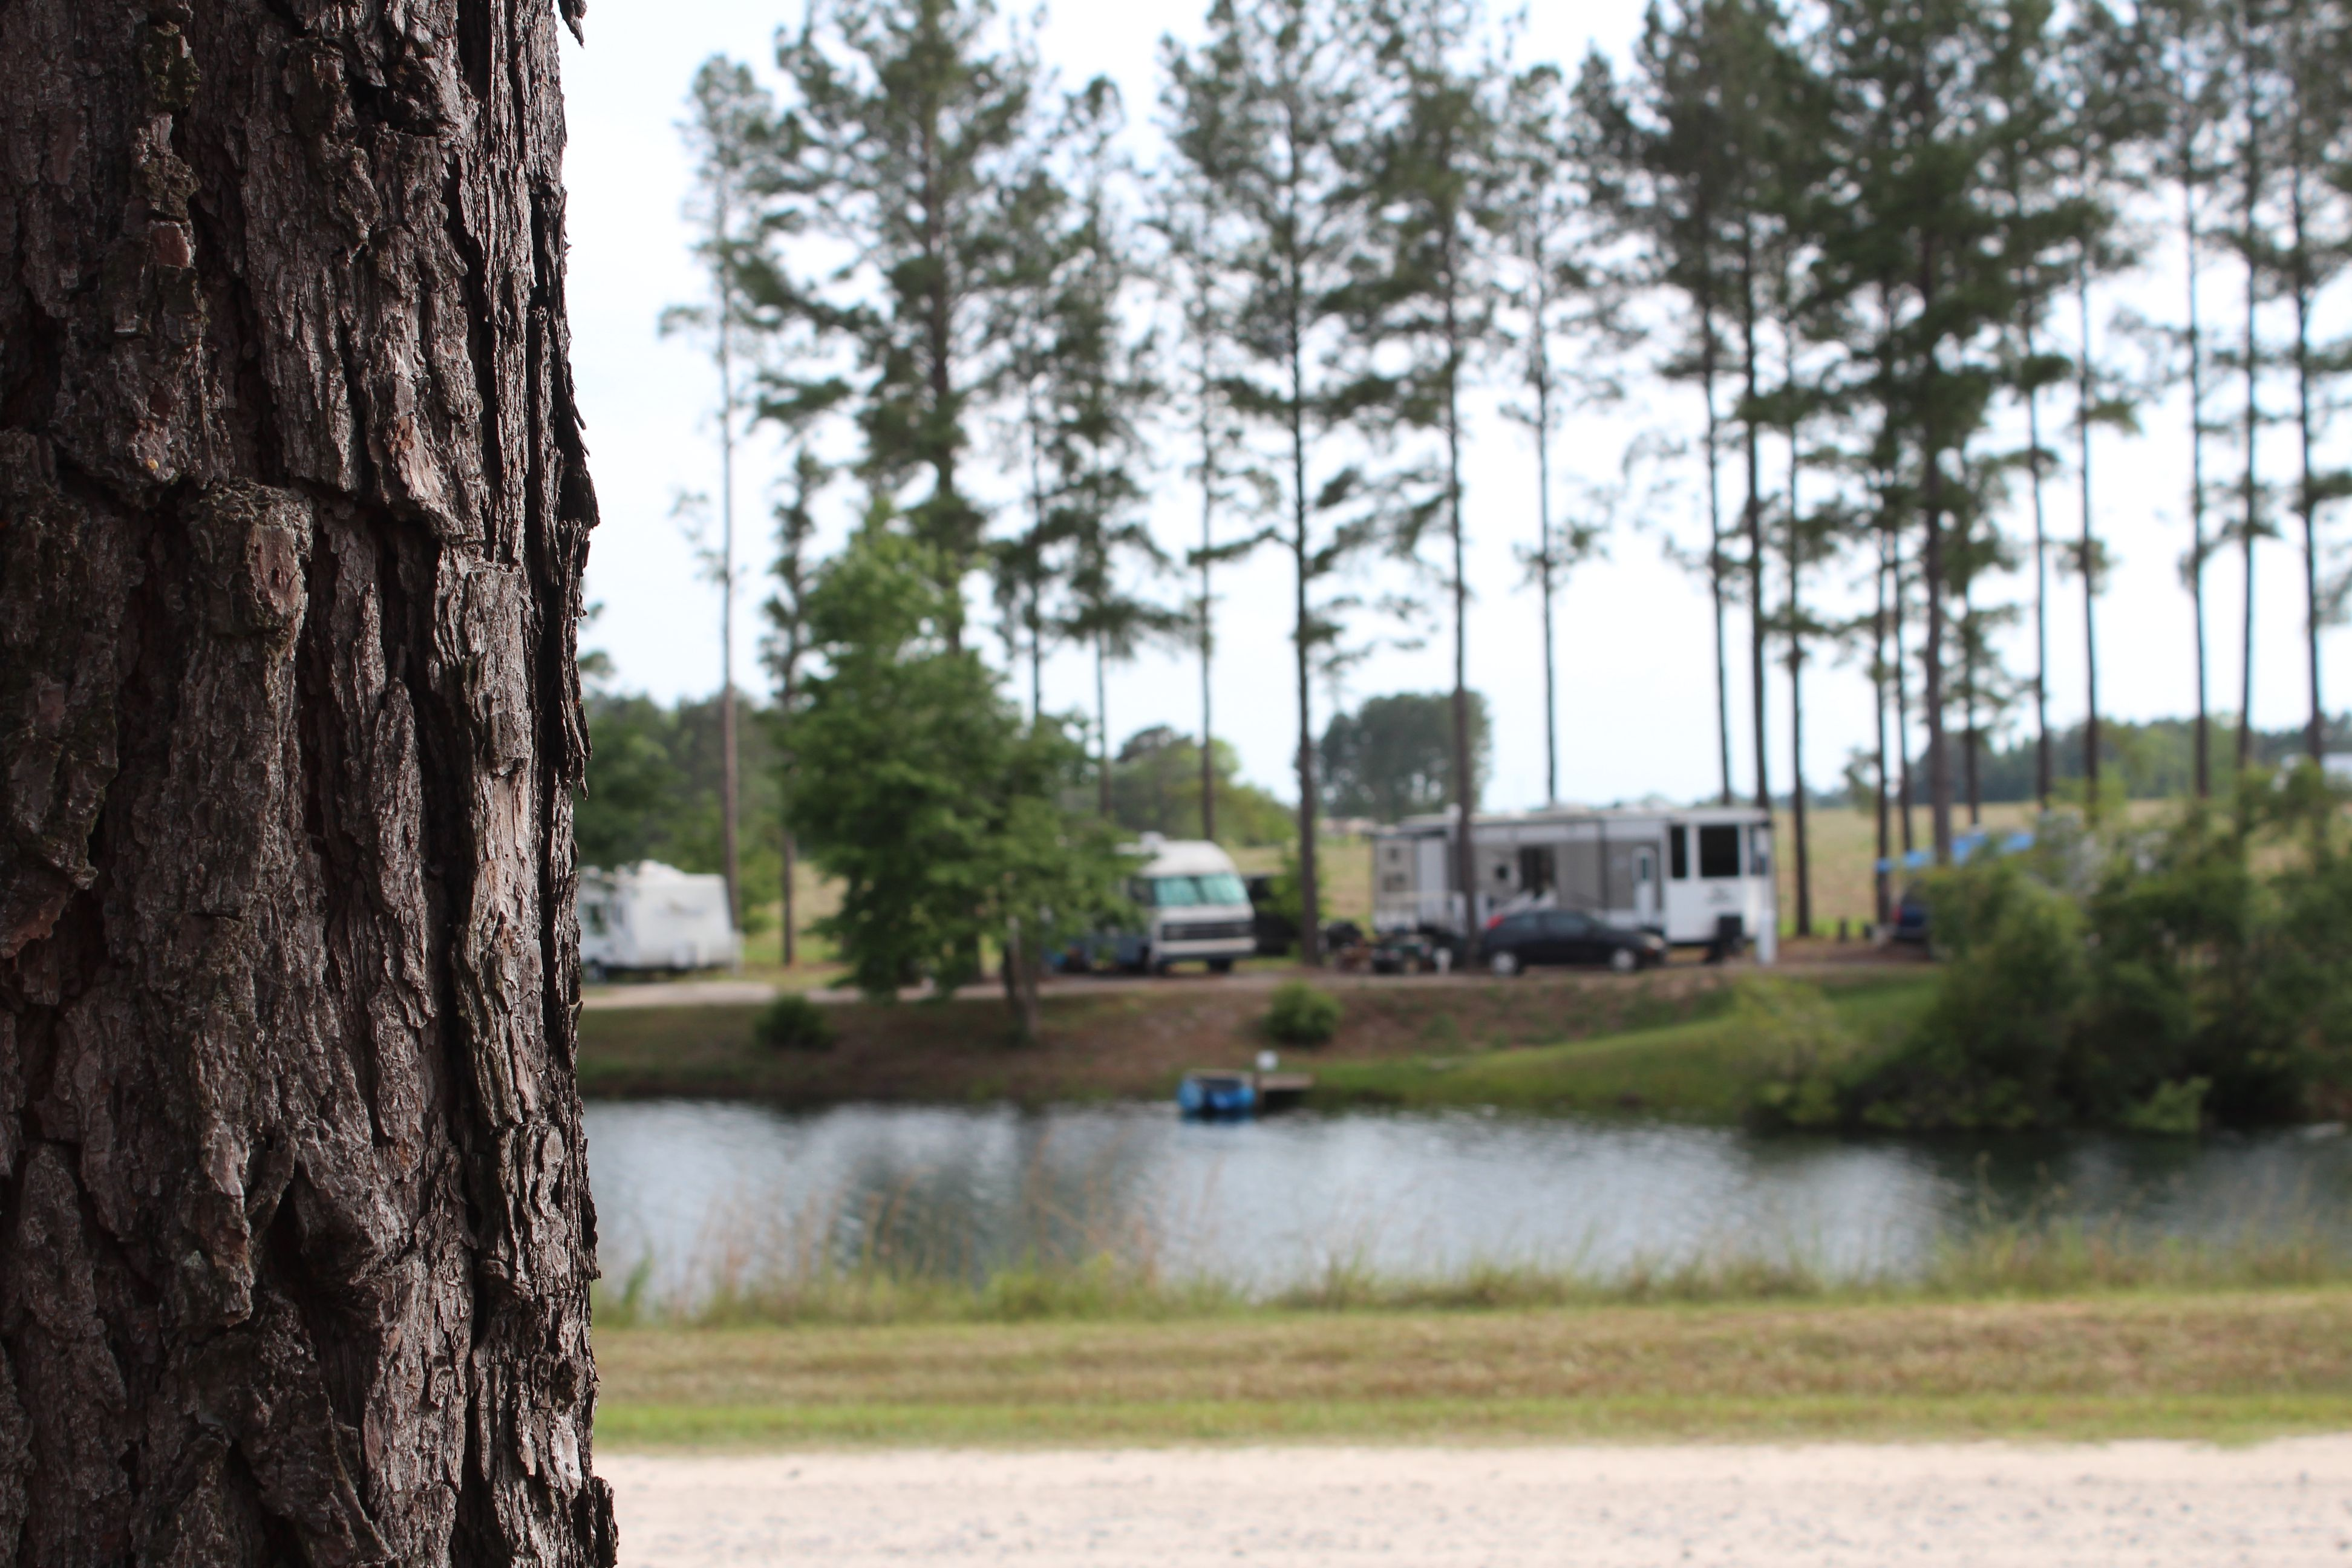 We hope you enjoy your stay at our beautiful Georgia RV Park!